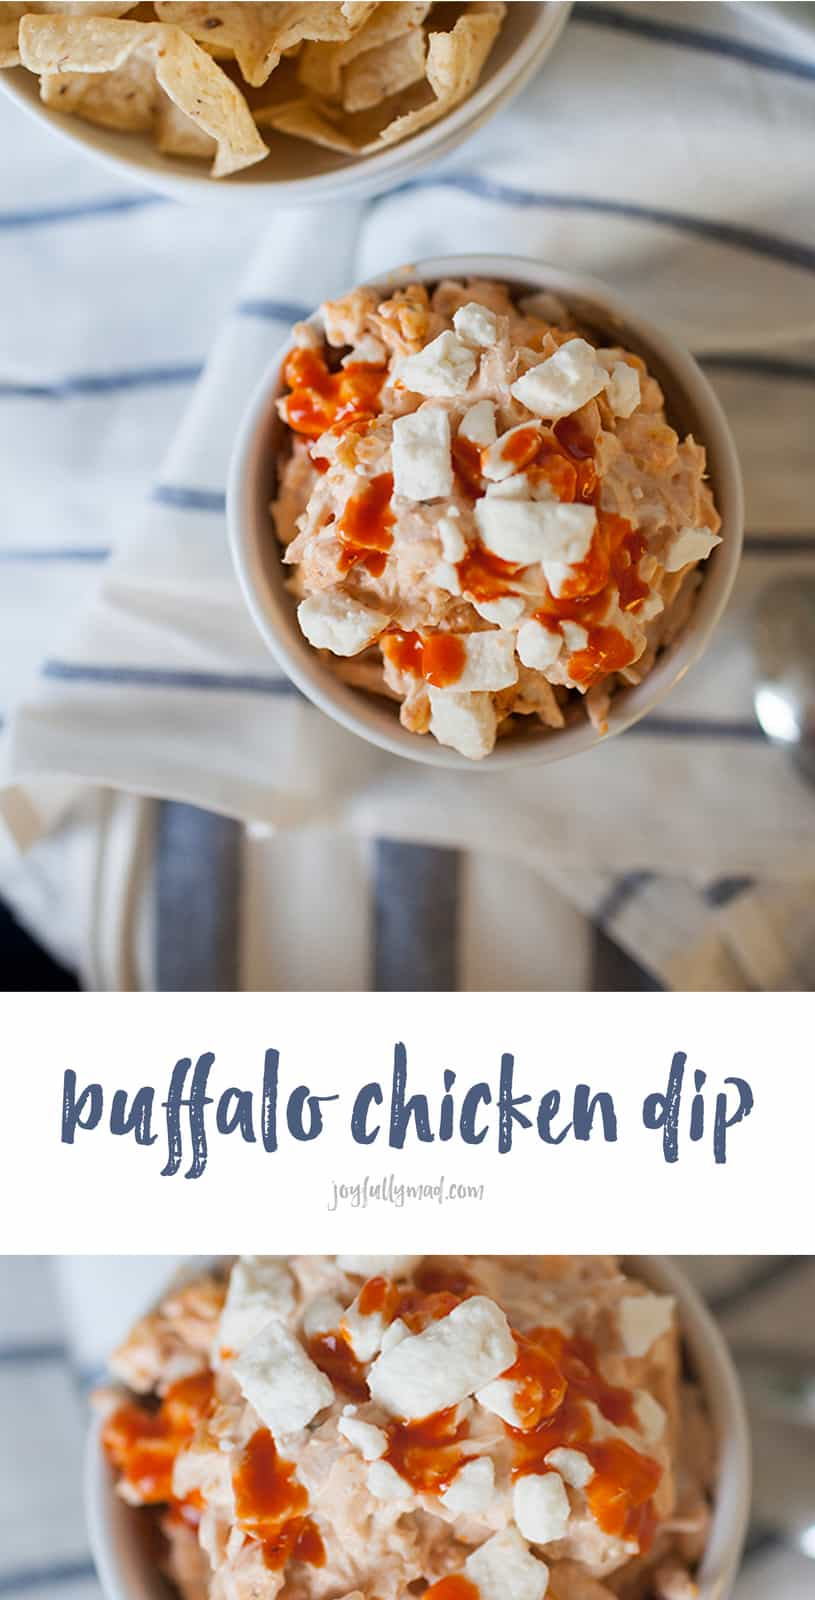 Super easy and quick buffalo chicken dip recipe. The perfect appetizer for the Big Game!